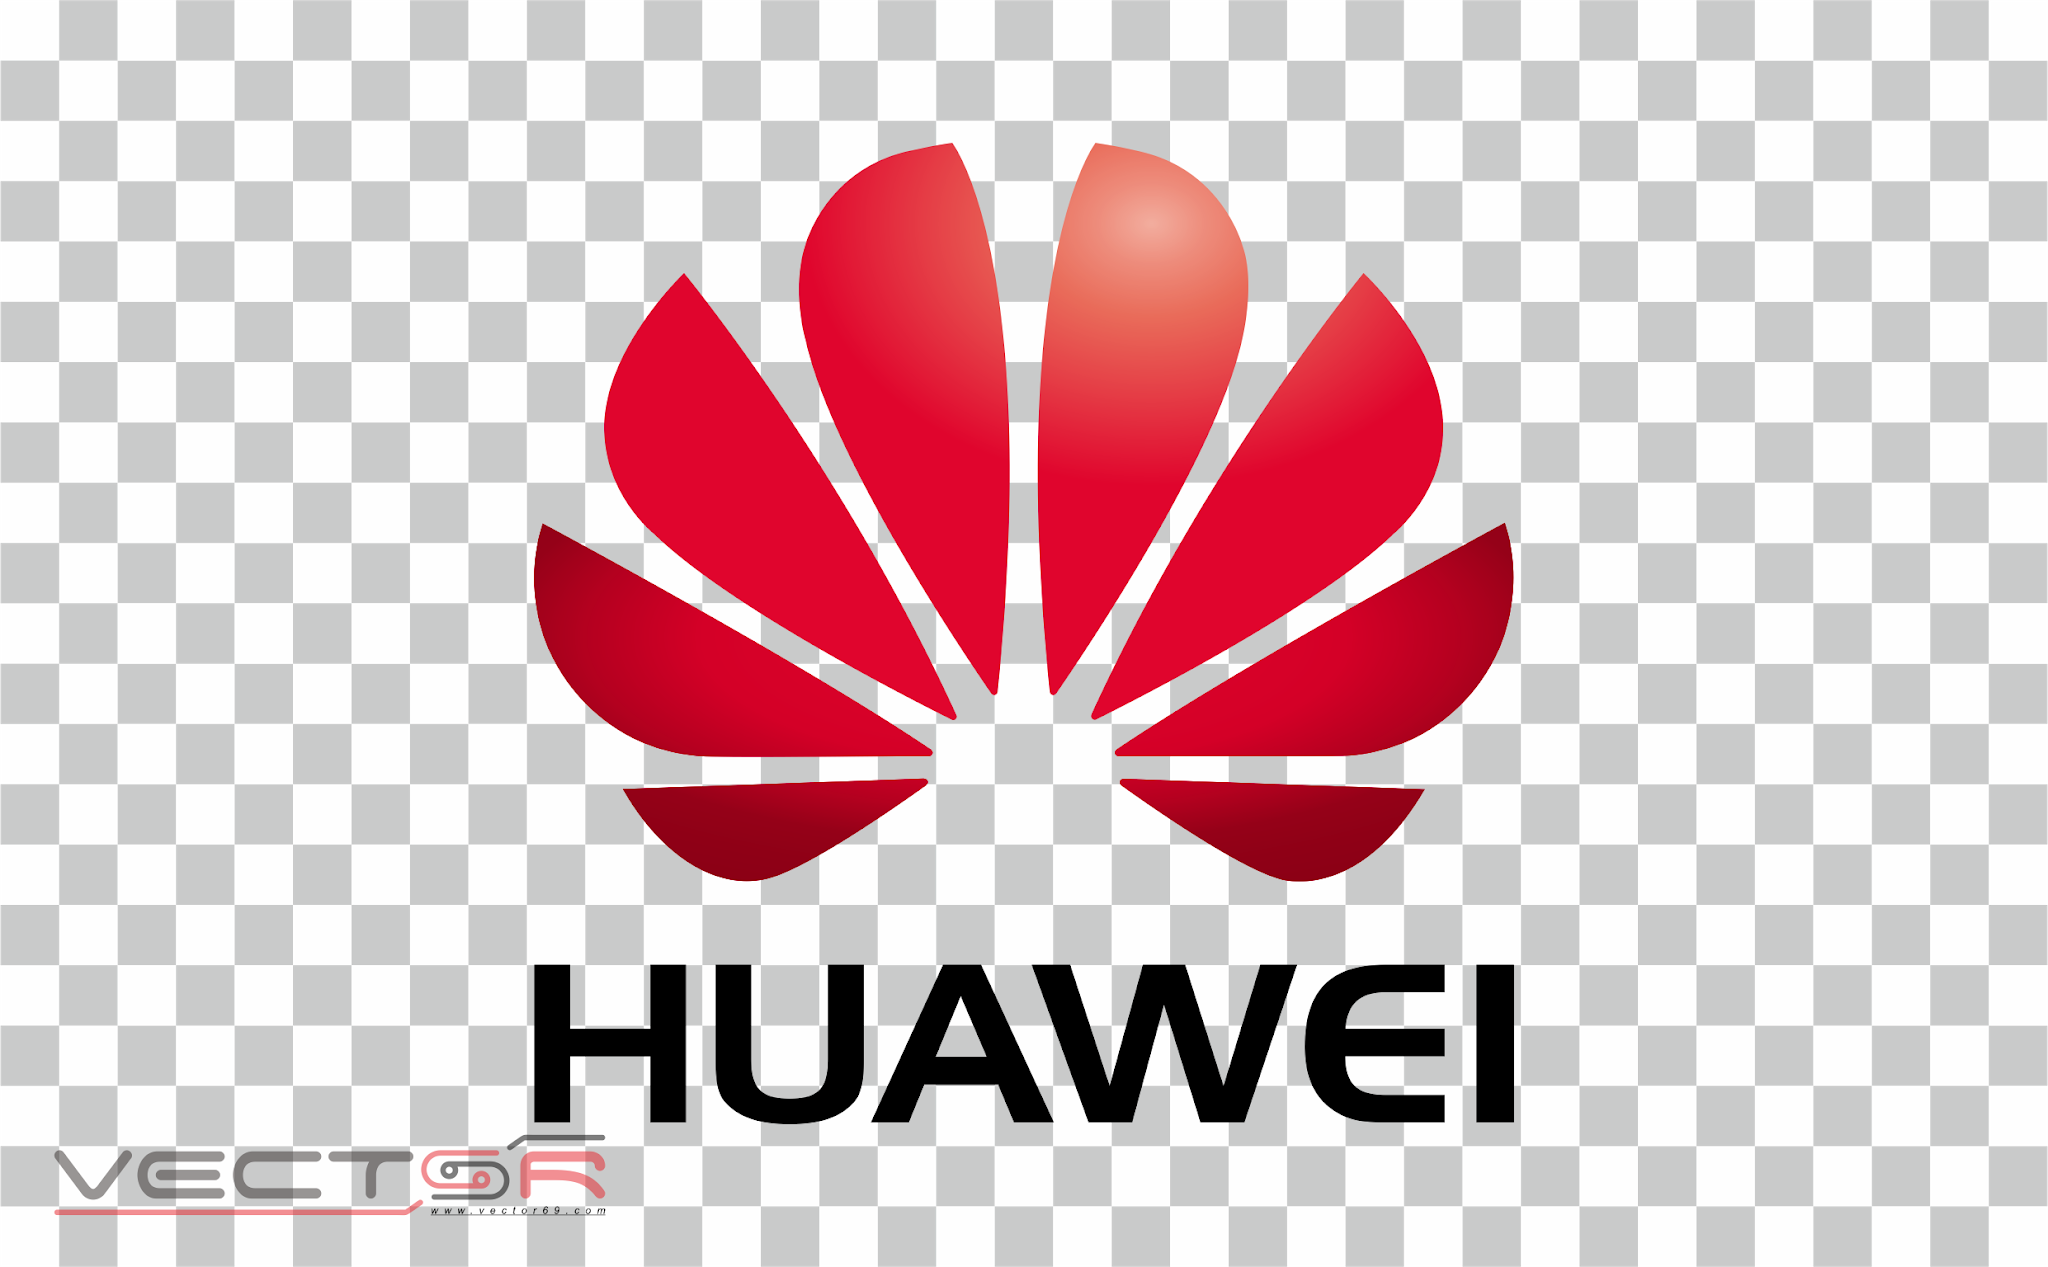 Huawei Logo - Download Vector File PNG (Portable Network Graphics)